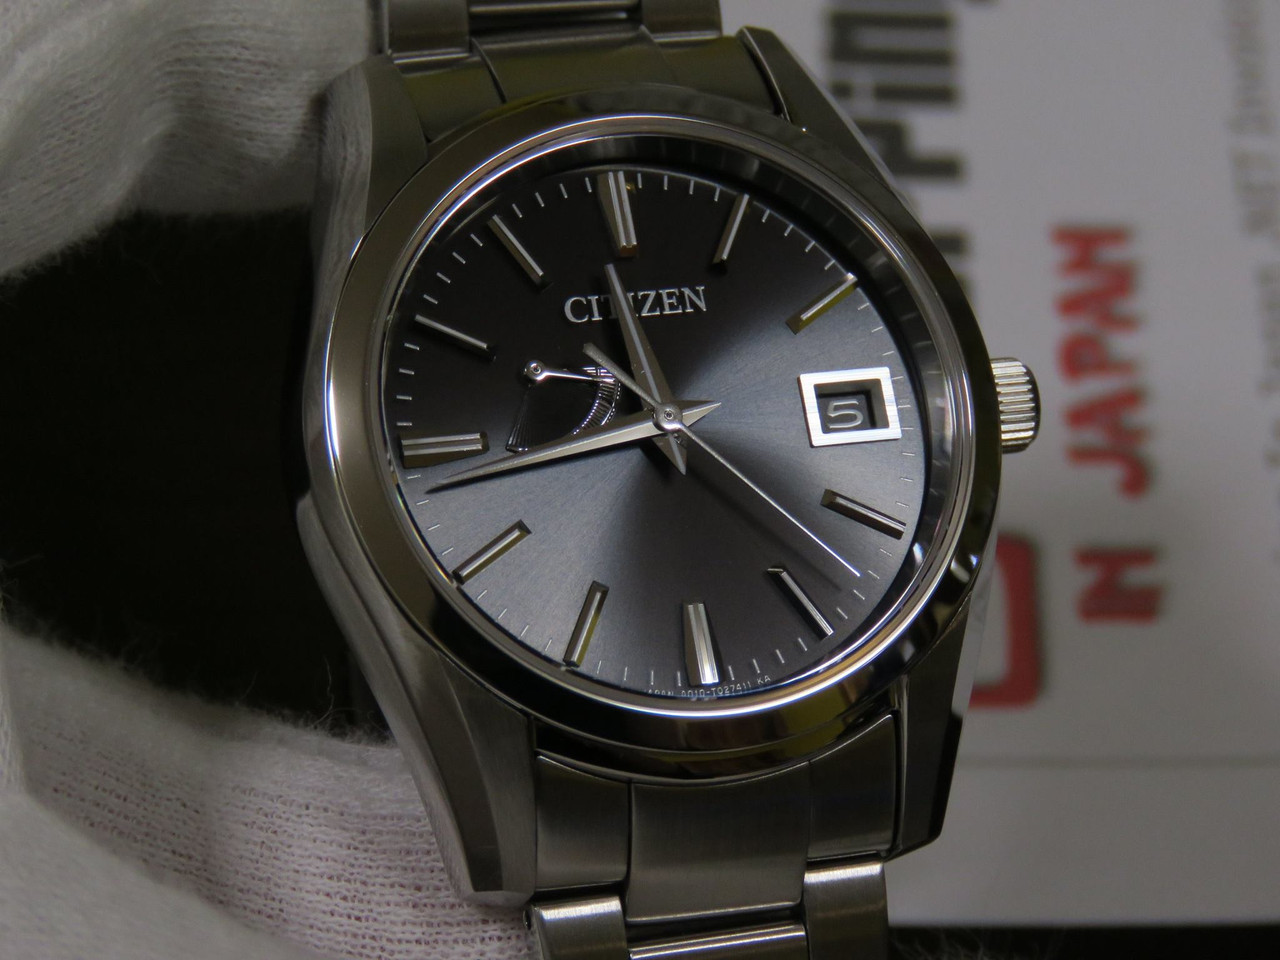 The Citizen AQ1000-58E